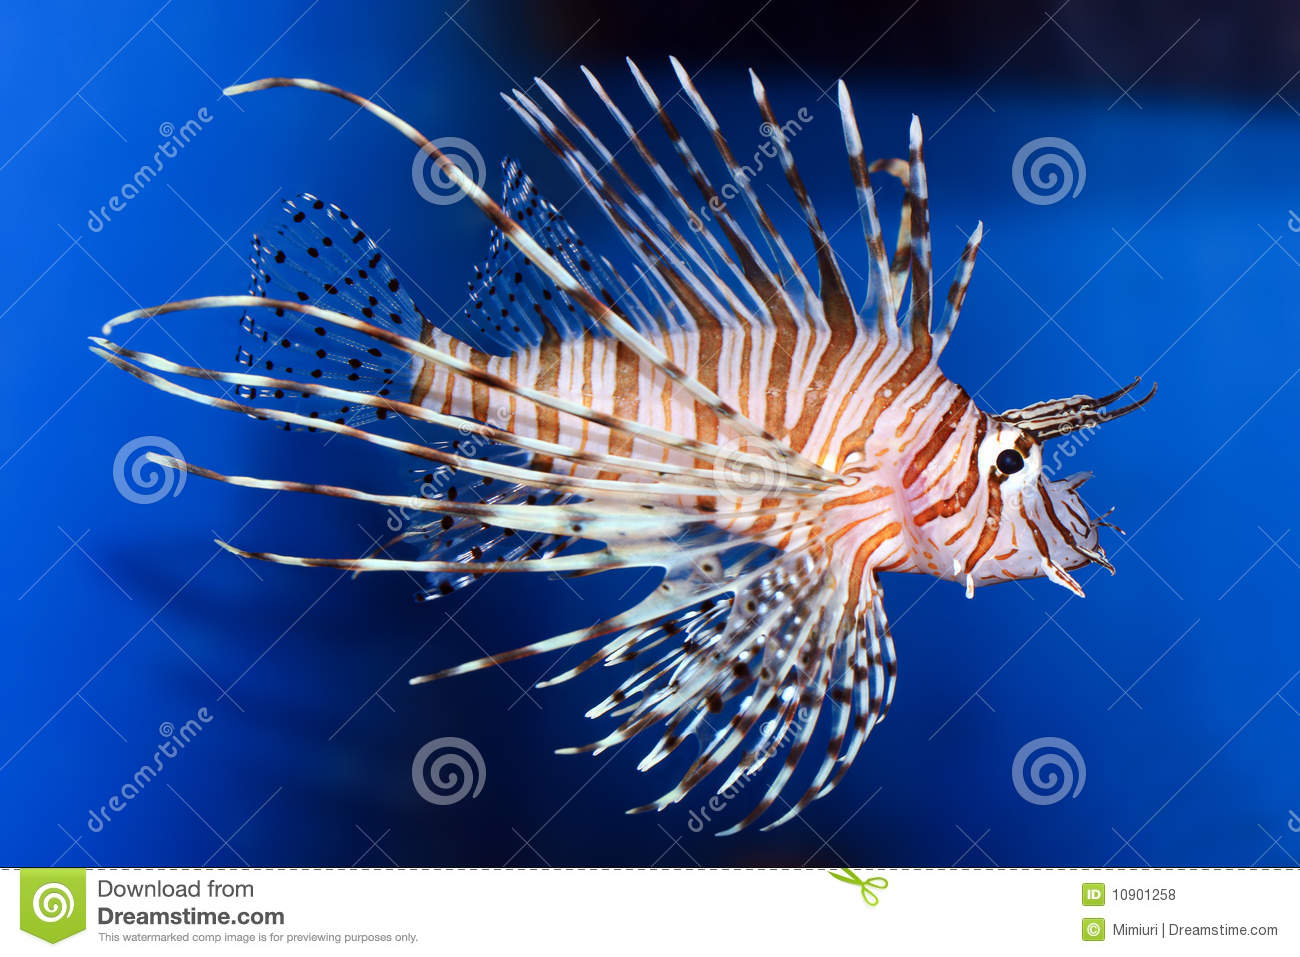 Strange Fish Royalty Free Stock Photos Image 10901258